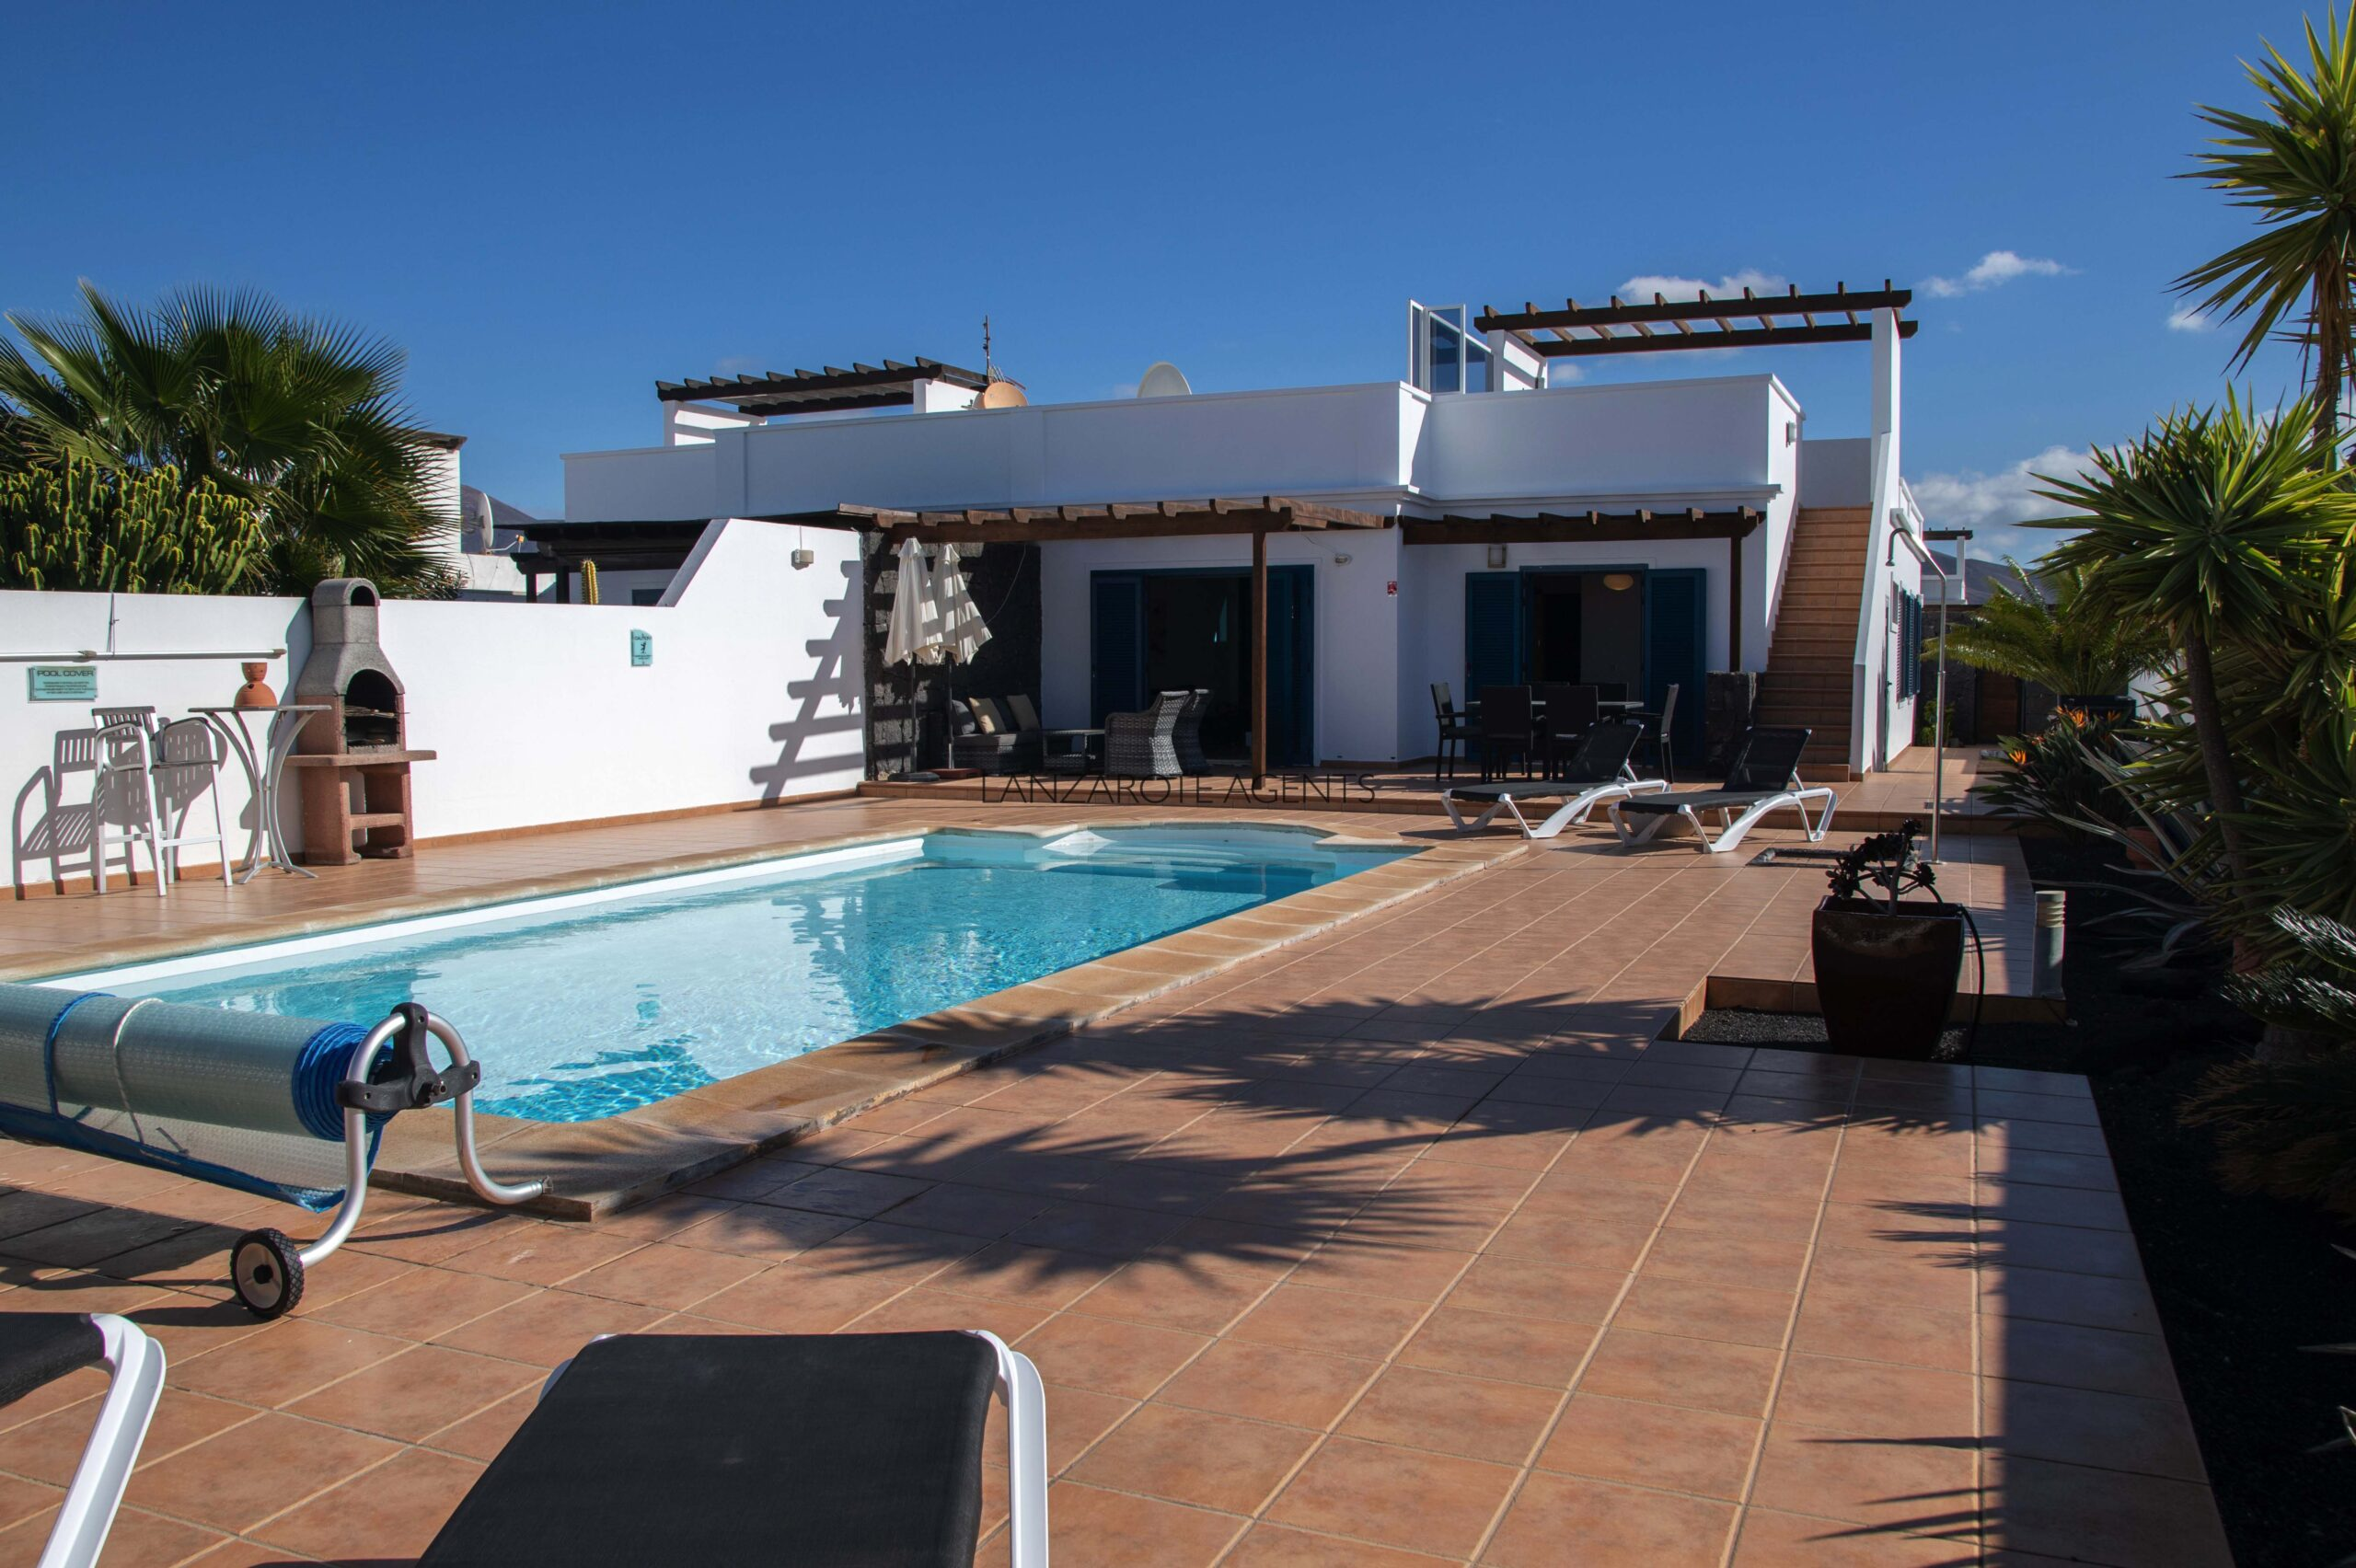 Wonderful Renovated Semi Detached Villa in Quiet Residential Area with Private Pool and Open Views